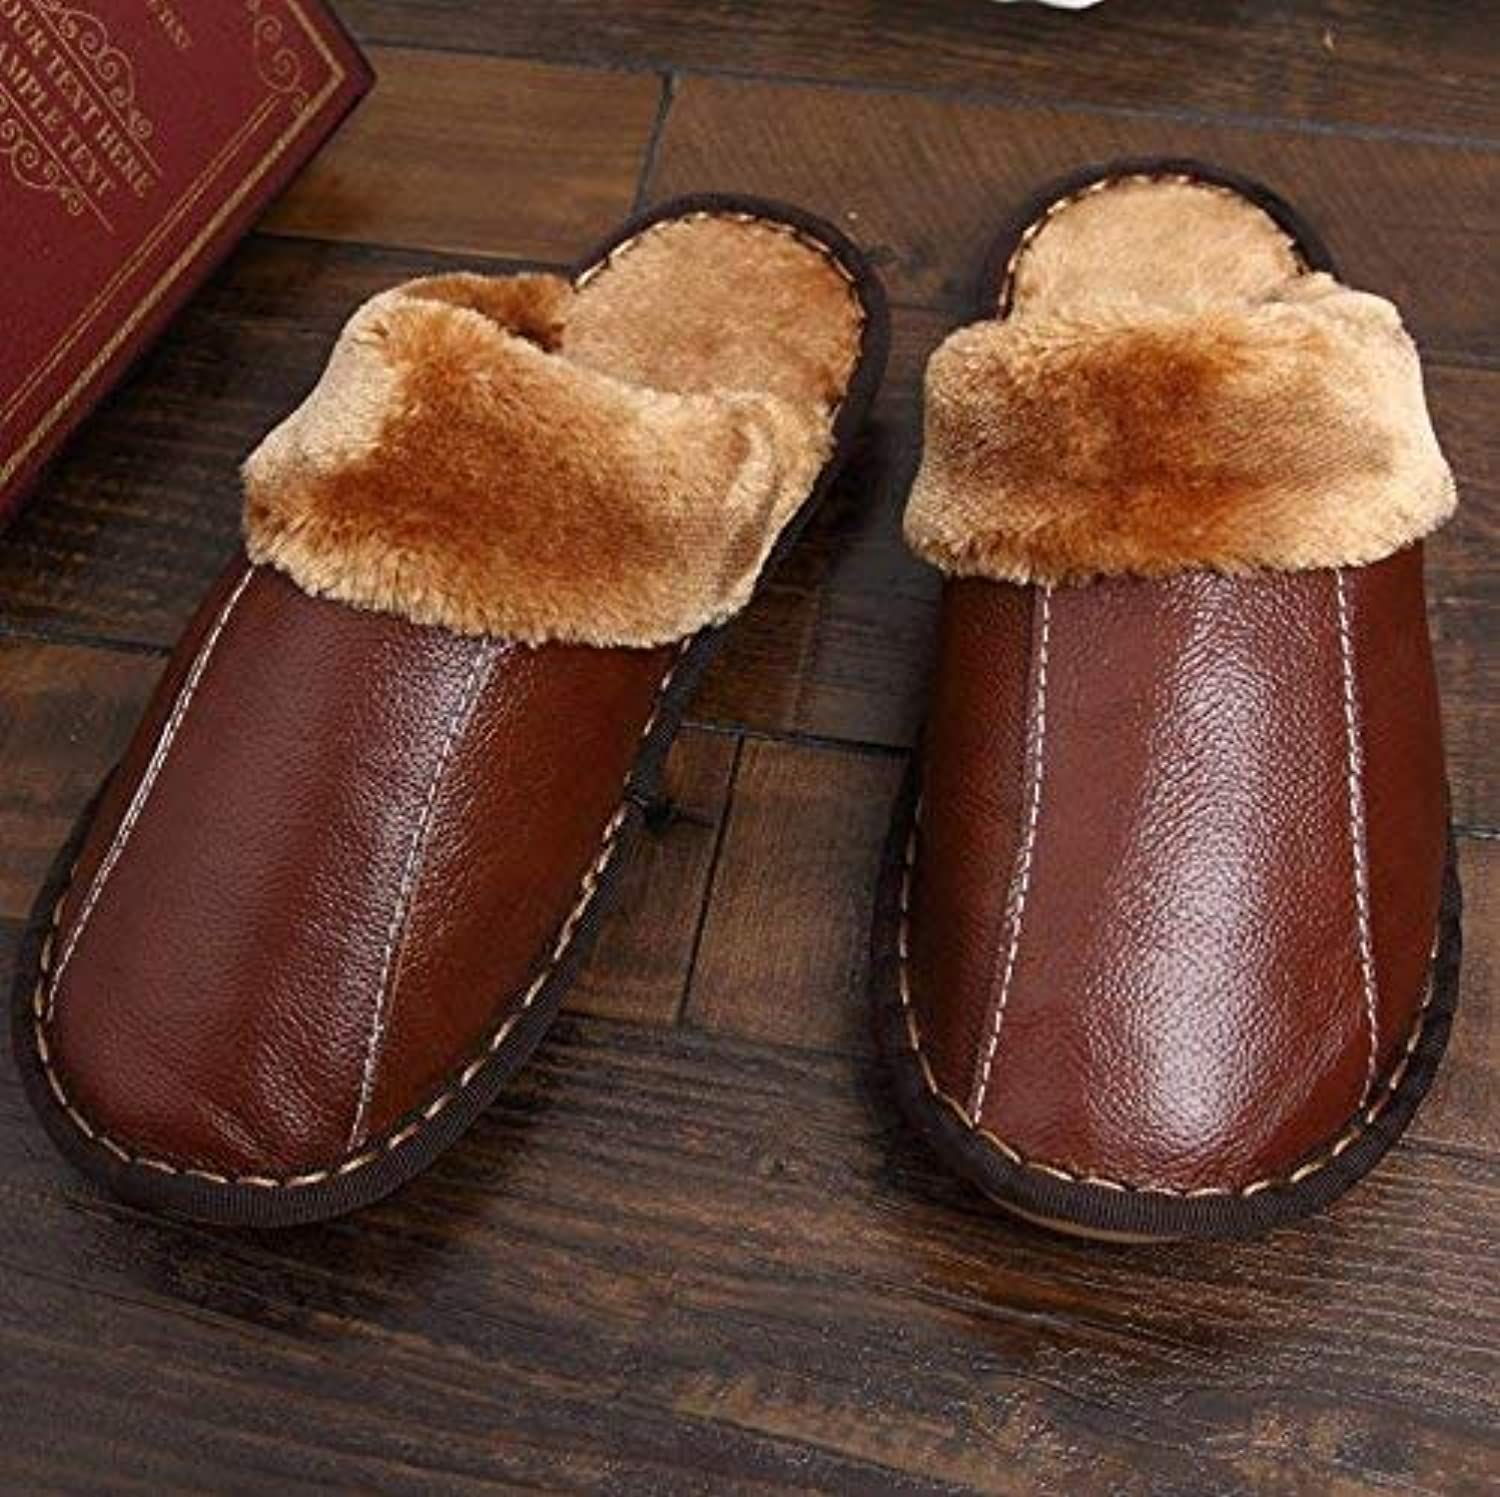 GouuoHi Men Slipper Men's Casual Sandals in Autumn and Winter The Indoor Warm Faux Leather Padded Slippers for Men Black Brown